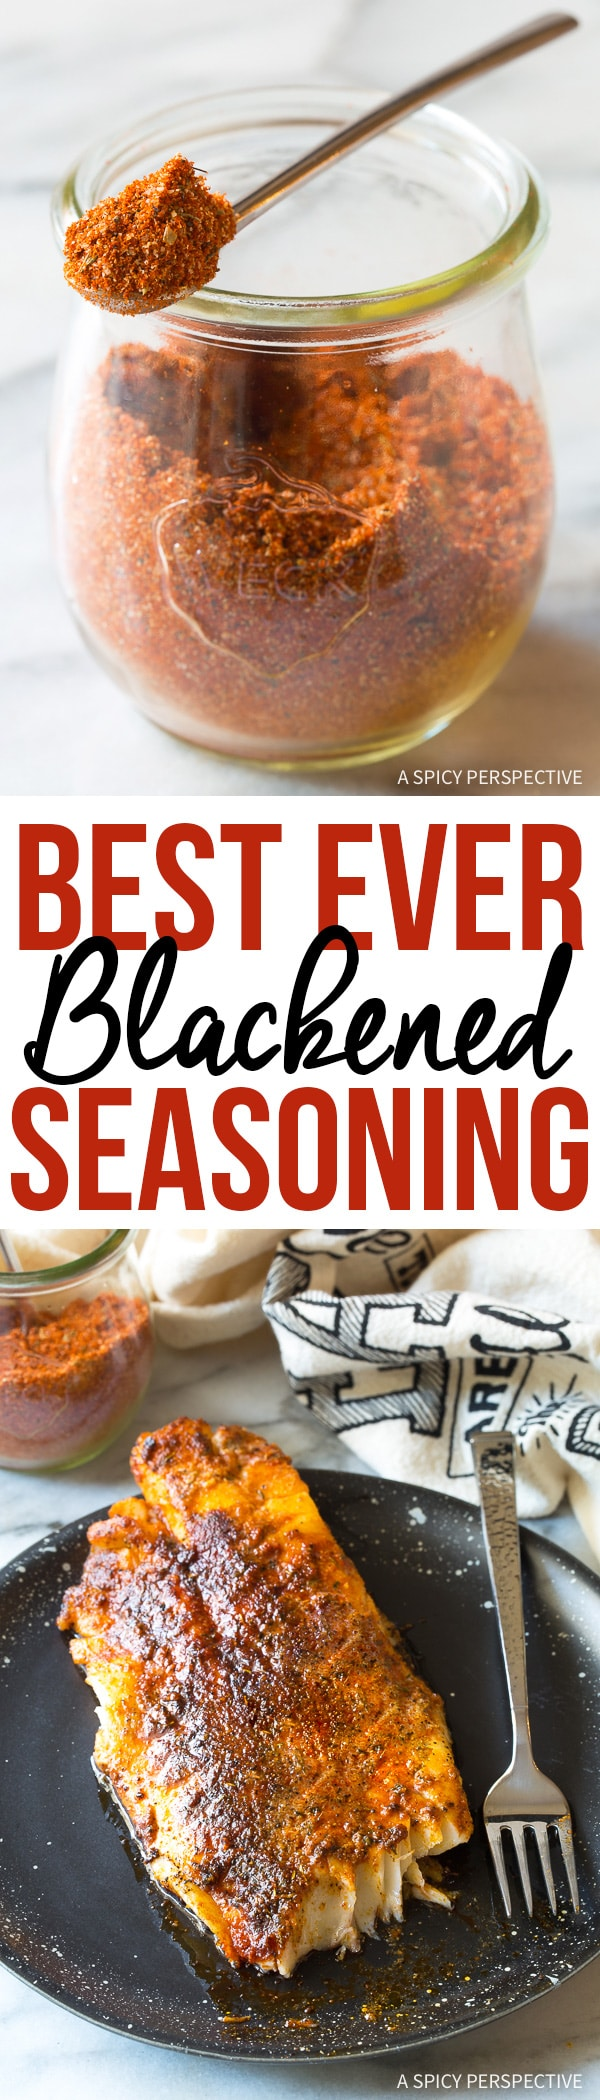 The Best Ever Blackened Seasoning (Cajun Spice Blend)